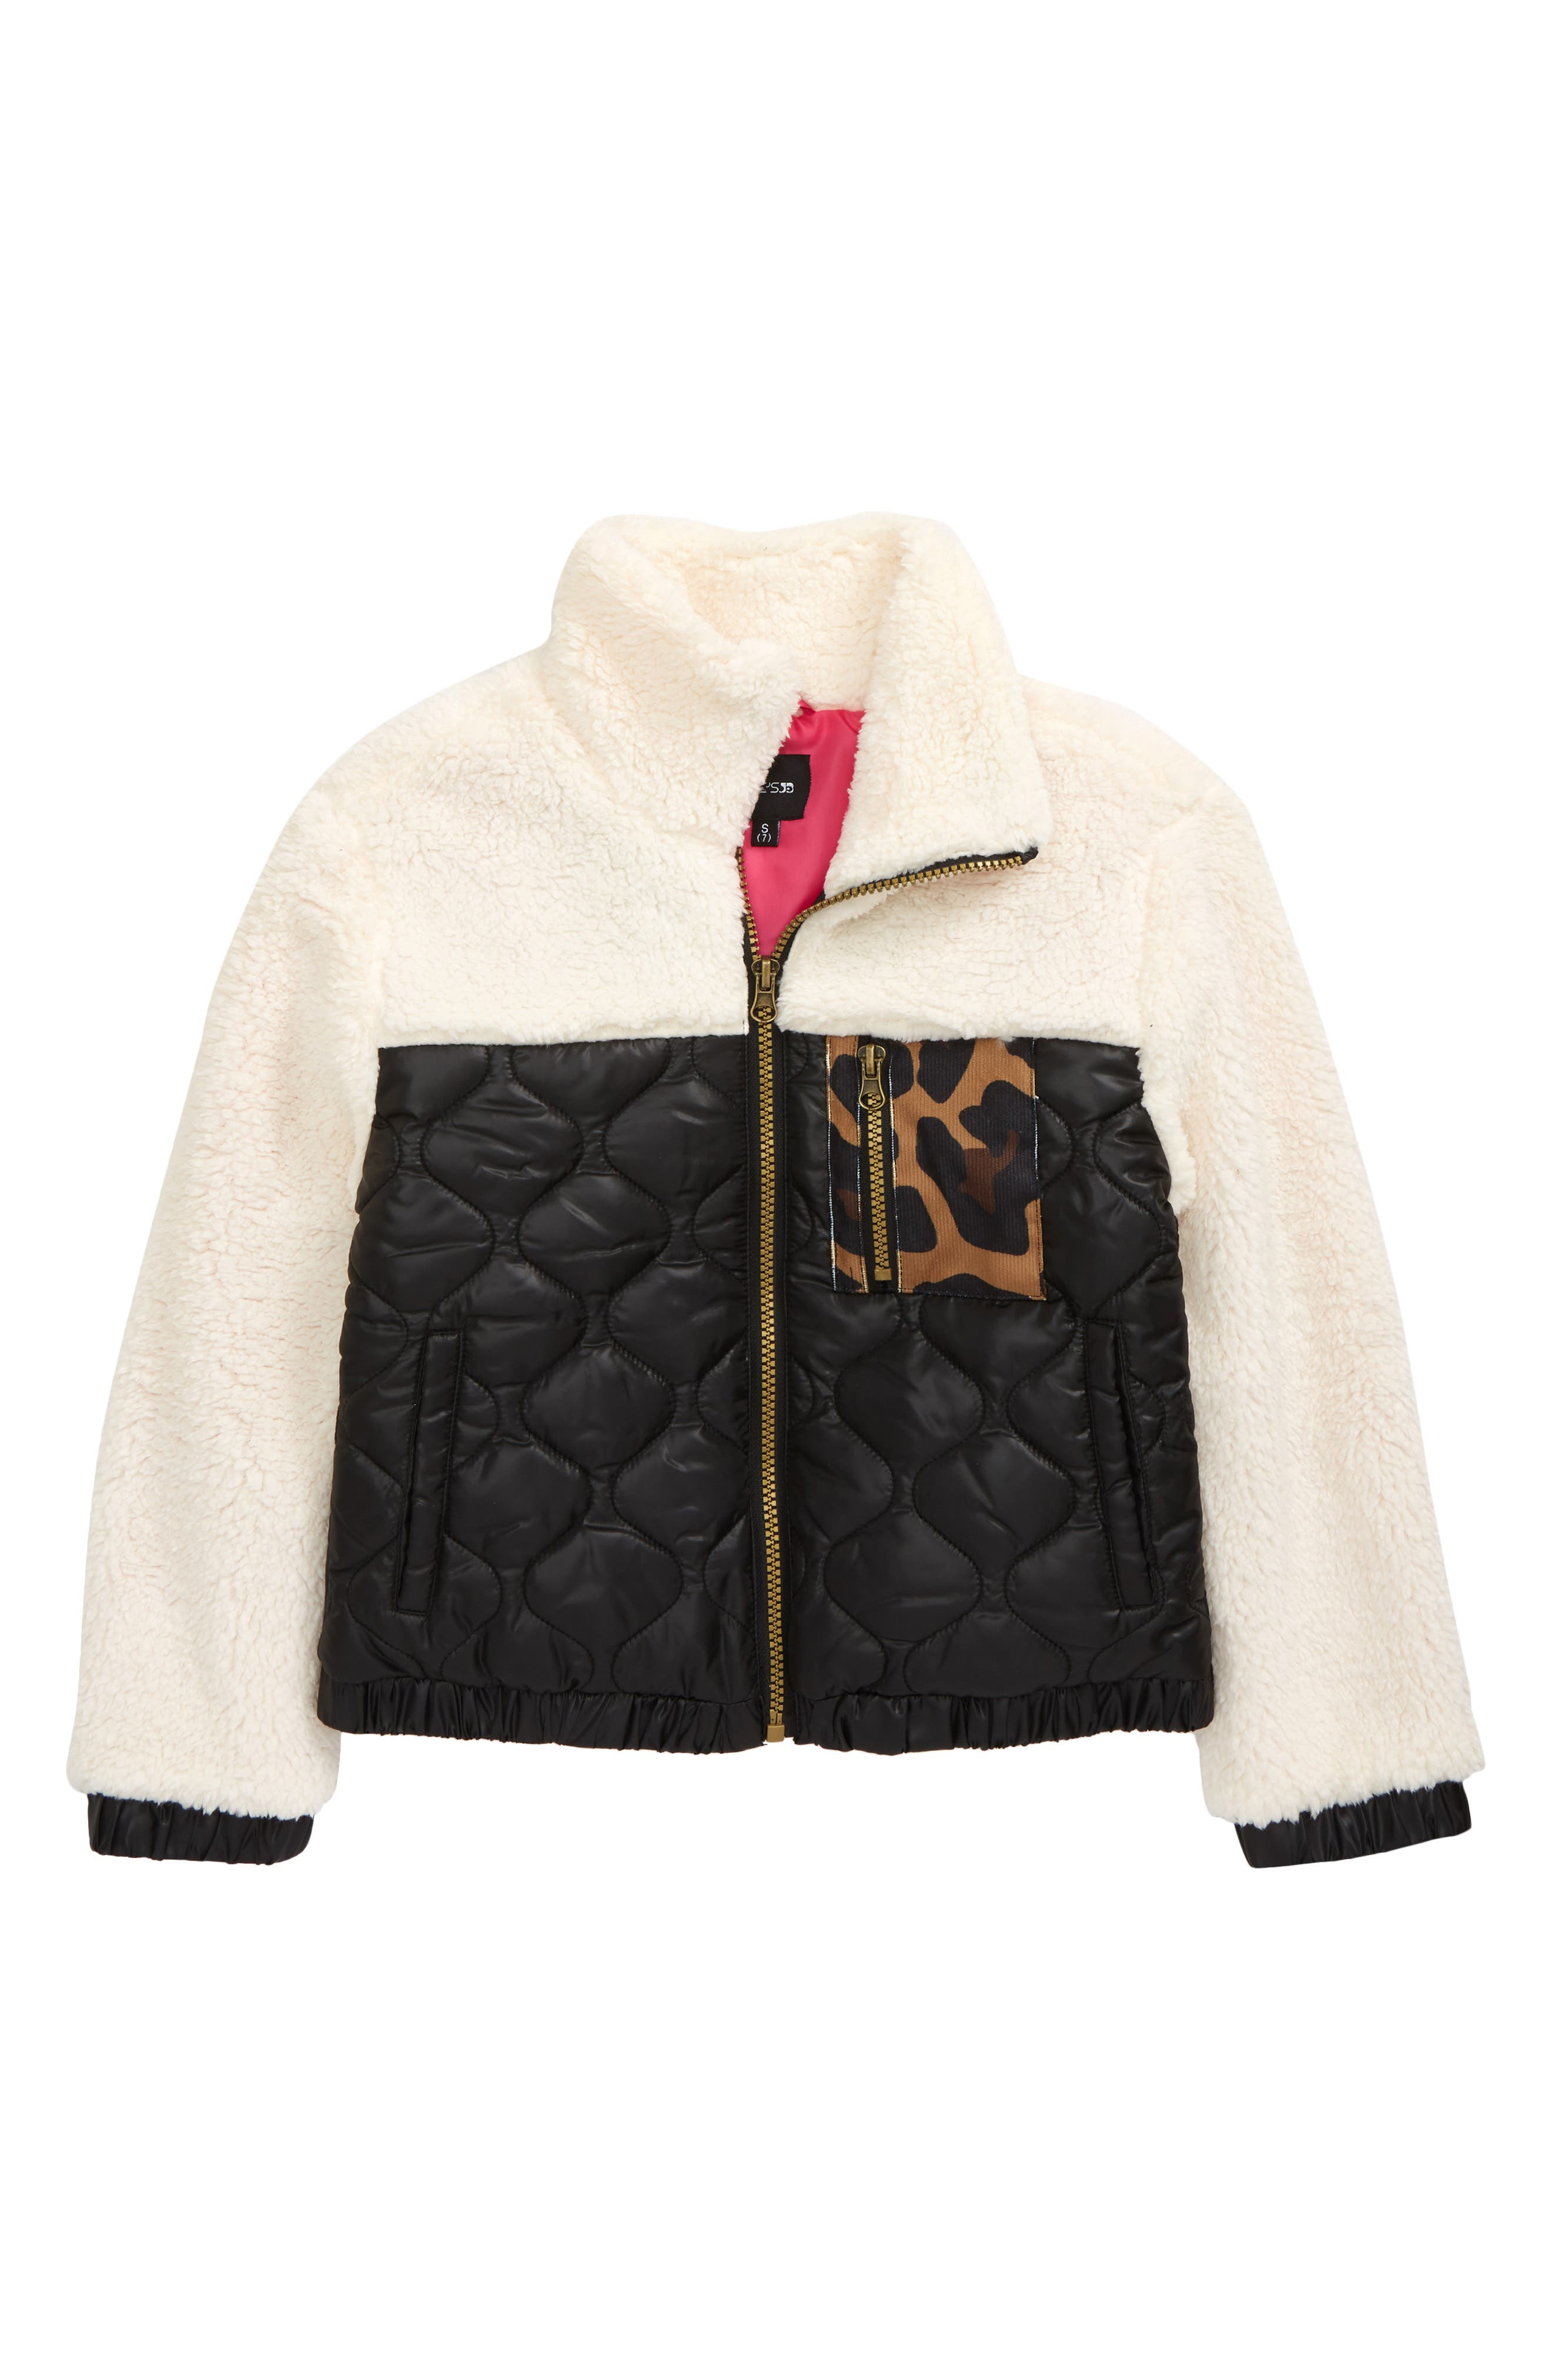 Keep her warm in this front-zip jacket styled with an irresistible mix of fluffy high-pile fleece, puffed quilting and a leopard-spotted zippered pocket. Style Name: Joe\\\'s Kids\\\' The Hailie Jacket (Big Girl). Style Number: 6108217. Available in stores.